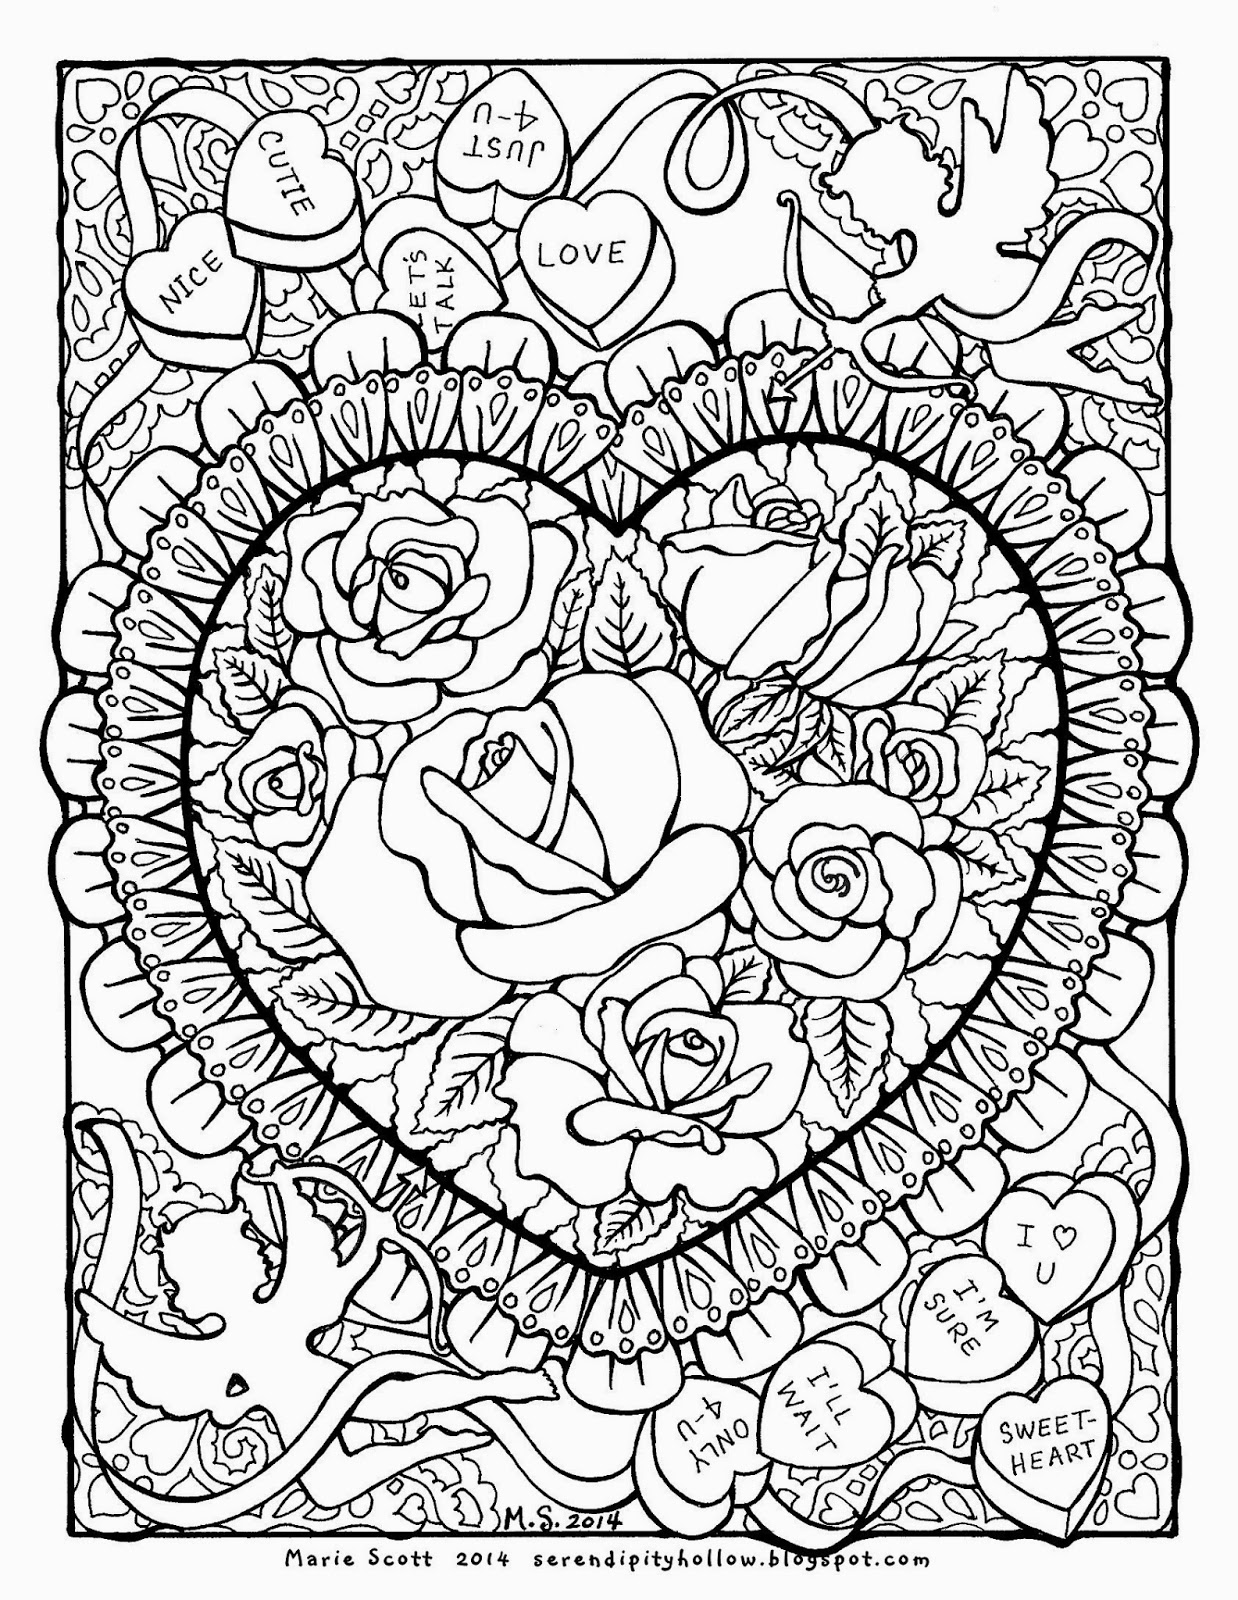 february coloring pages printables | Serendipity Hollow: Coloring book Page . . . February